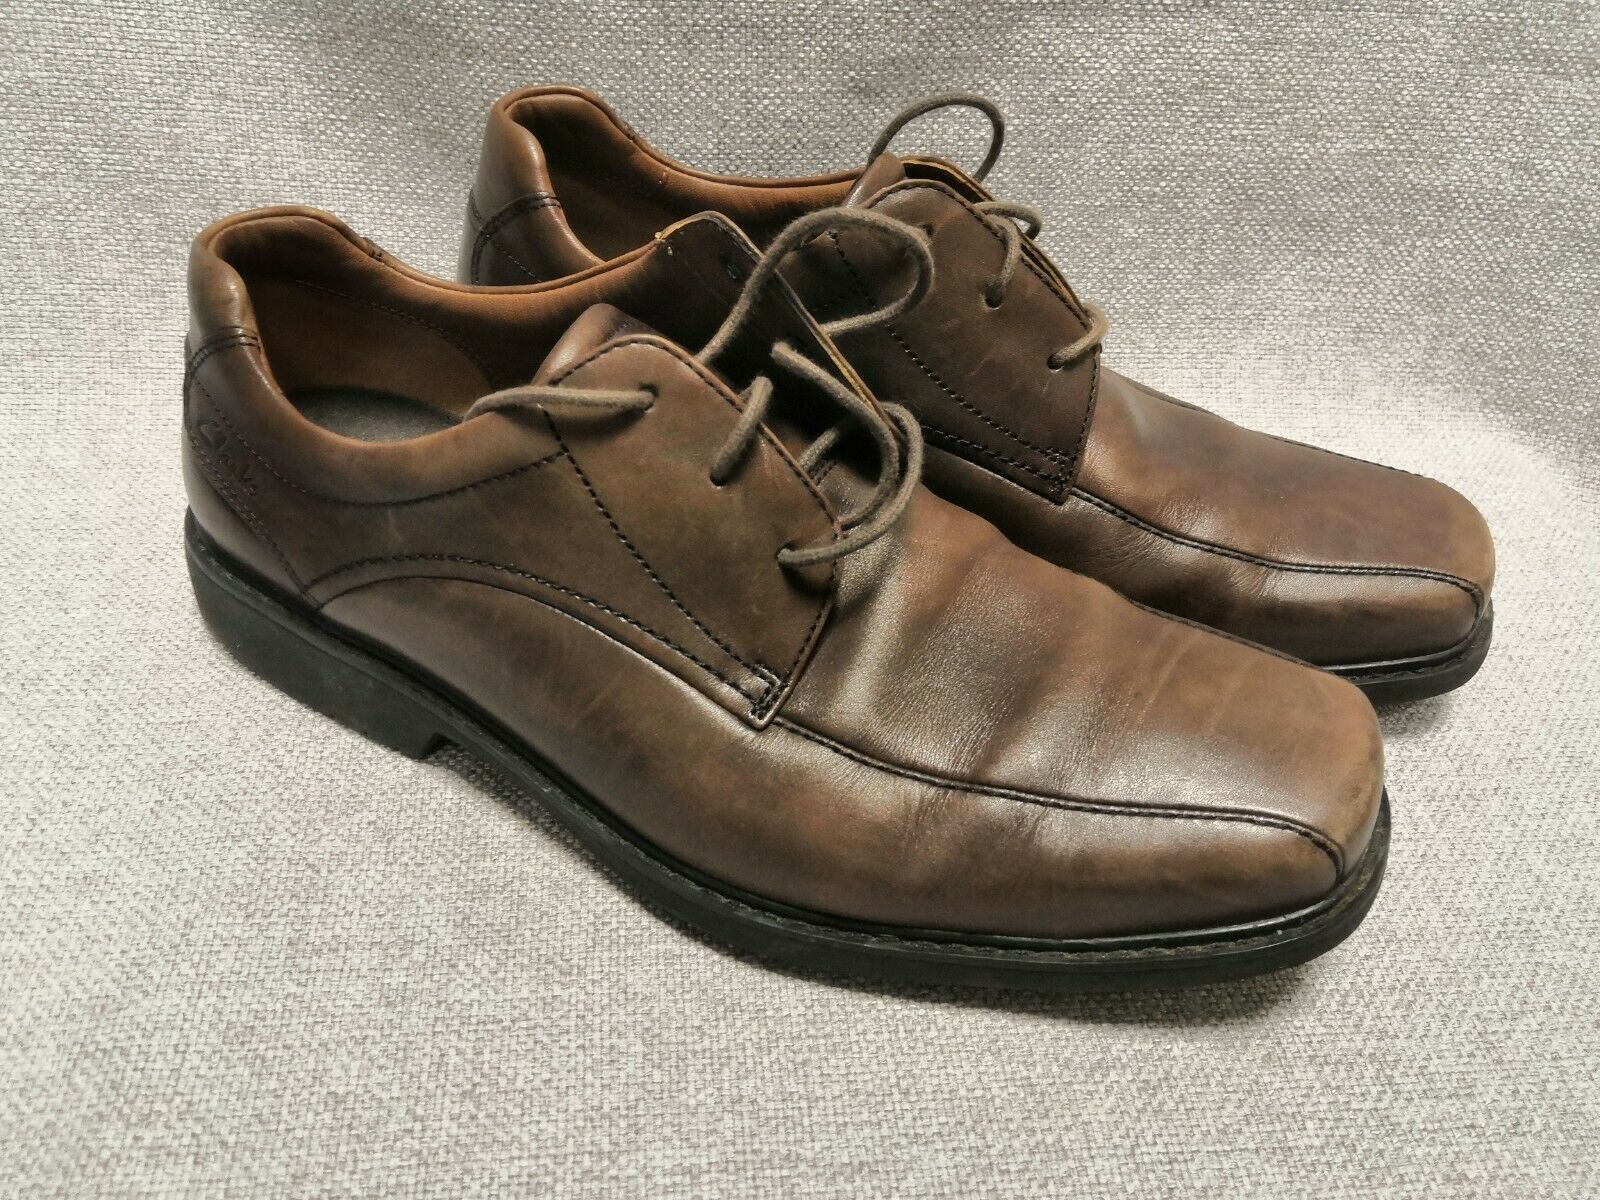 MENS CLARKS BROWN LEATHER SHOES SIZE 8.5 UK